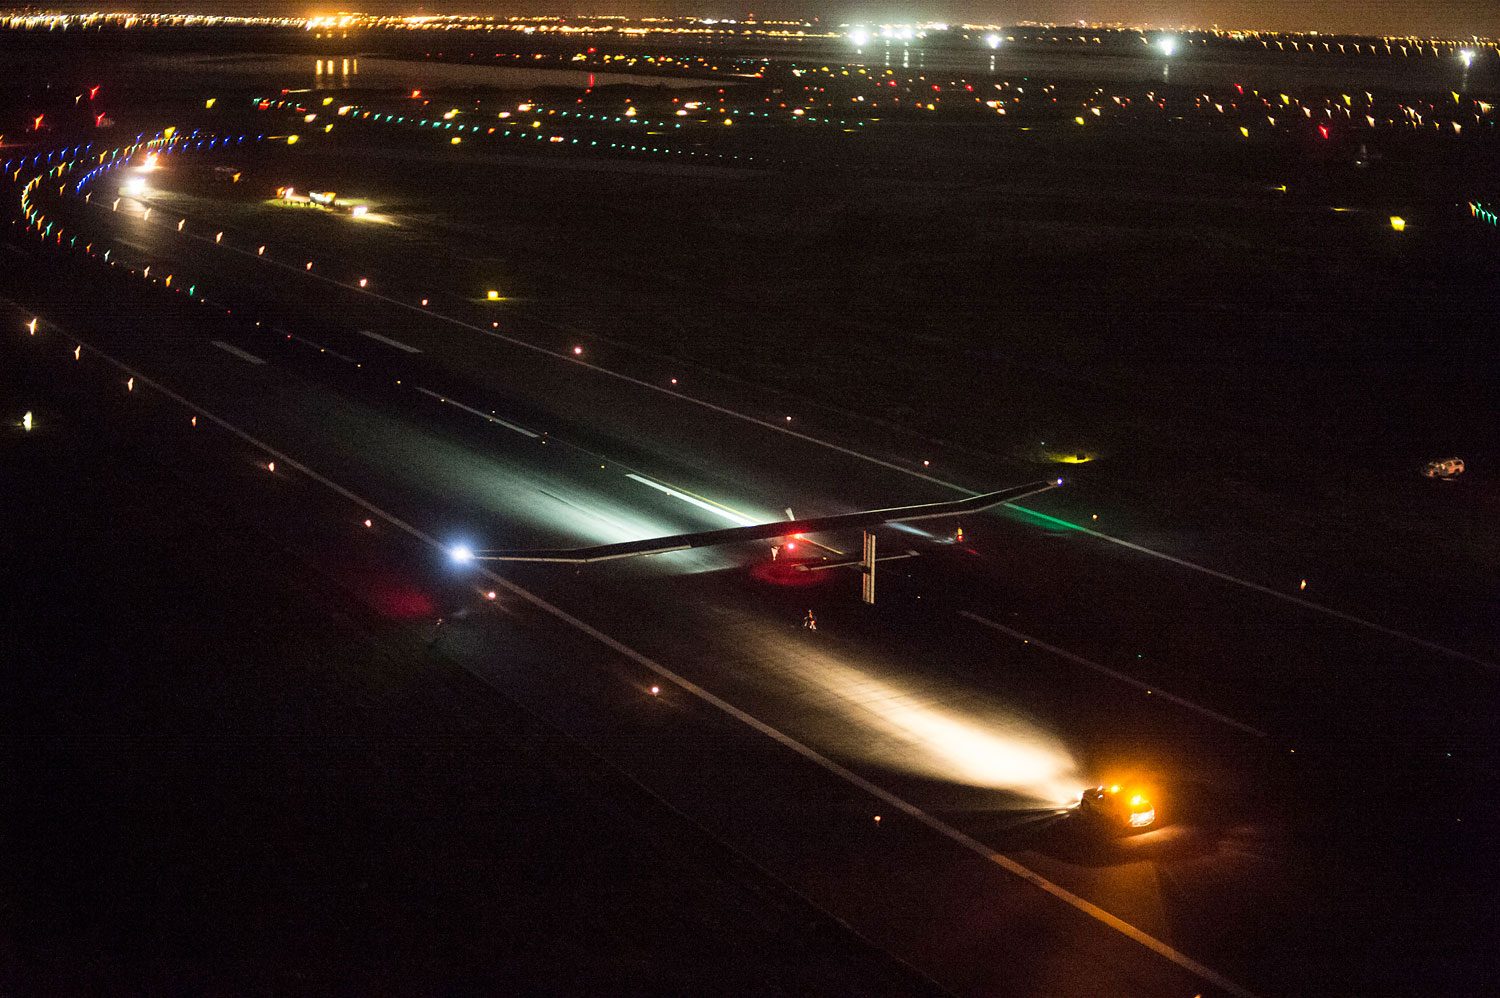 Solar Impulse lands at Kennedy airport. The solar-powered airplane of Swiss pioneers Bertrand Piccard and Andre Borschberg completed the final leg of the Across America campaign, flying from Dulles to New York's Kennedy airport.